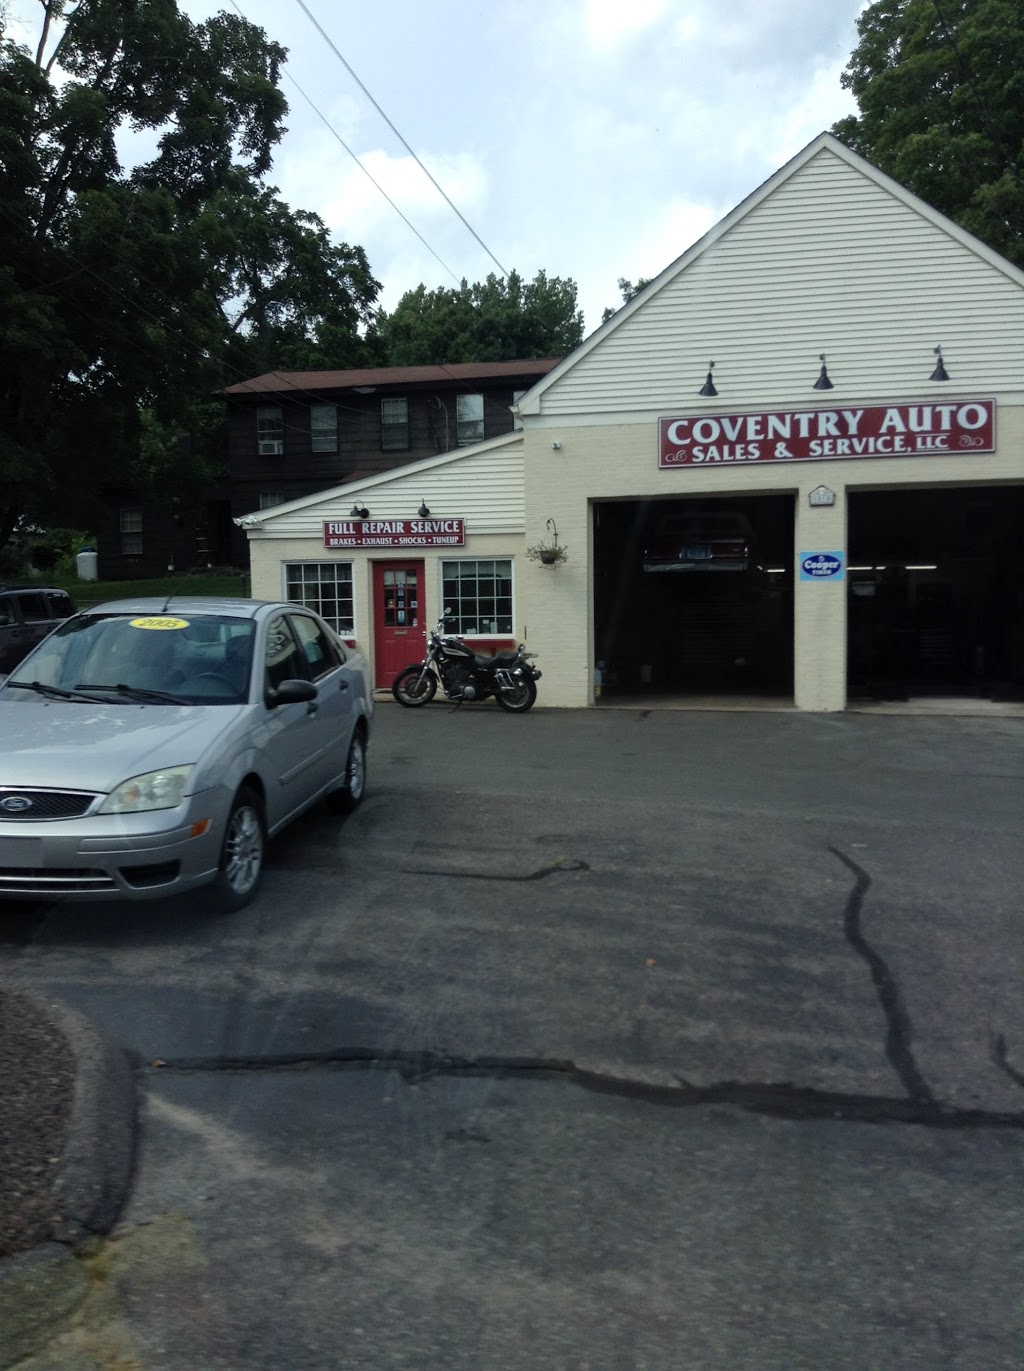 Coventry Auto Sales & Services LLC - car dealer    Photo 2 of 4   Address: 1010 Main St, Coventry, CT 06238, USA   Phone: (860) 742-6134